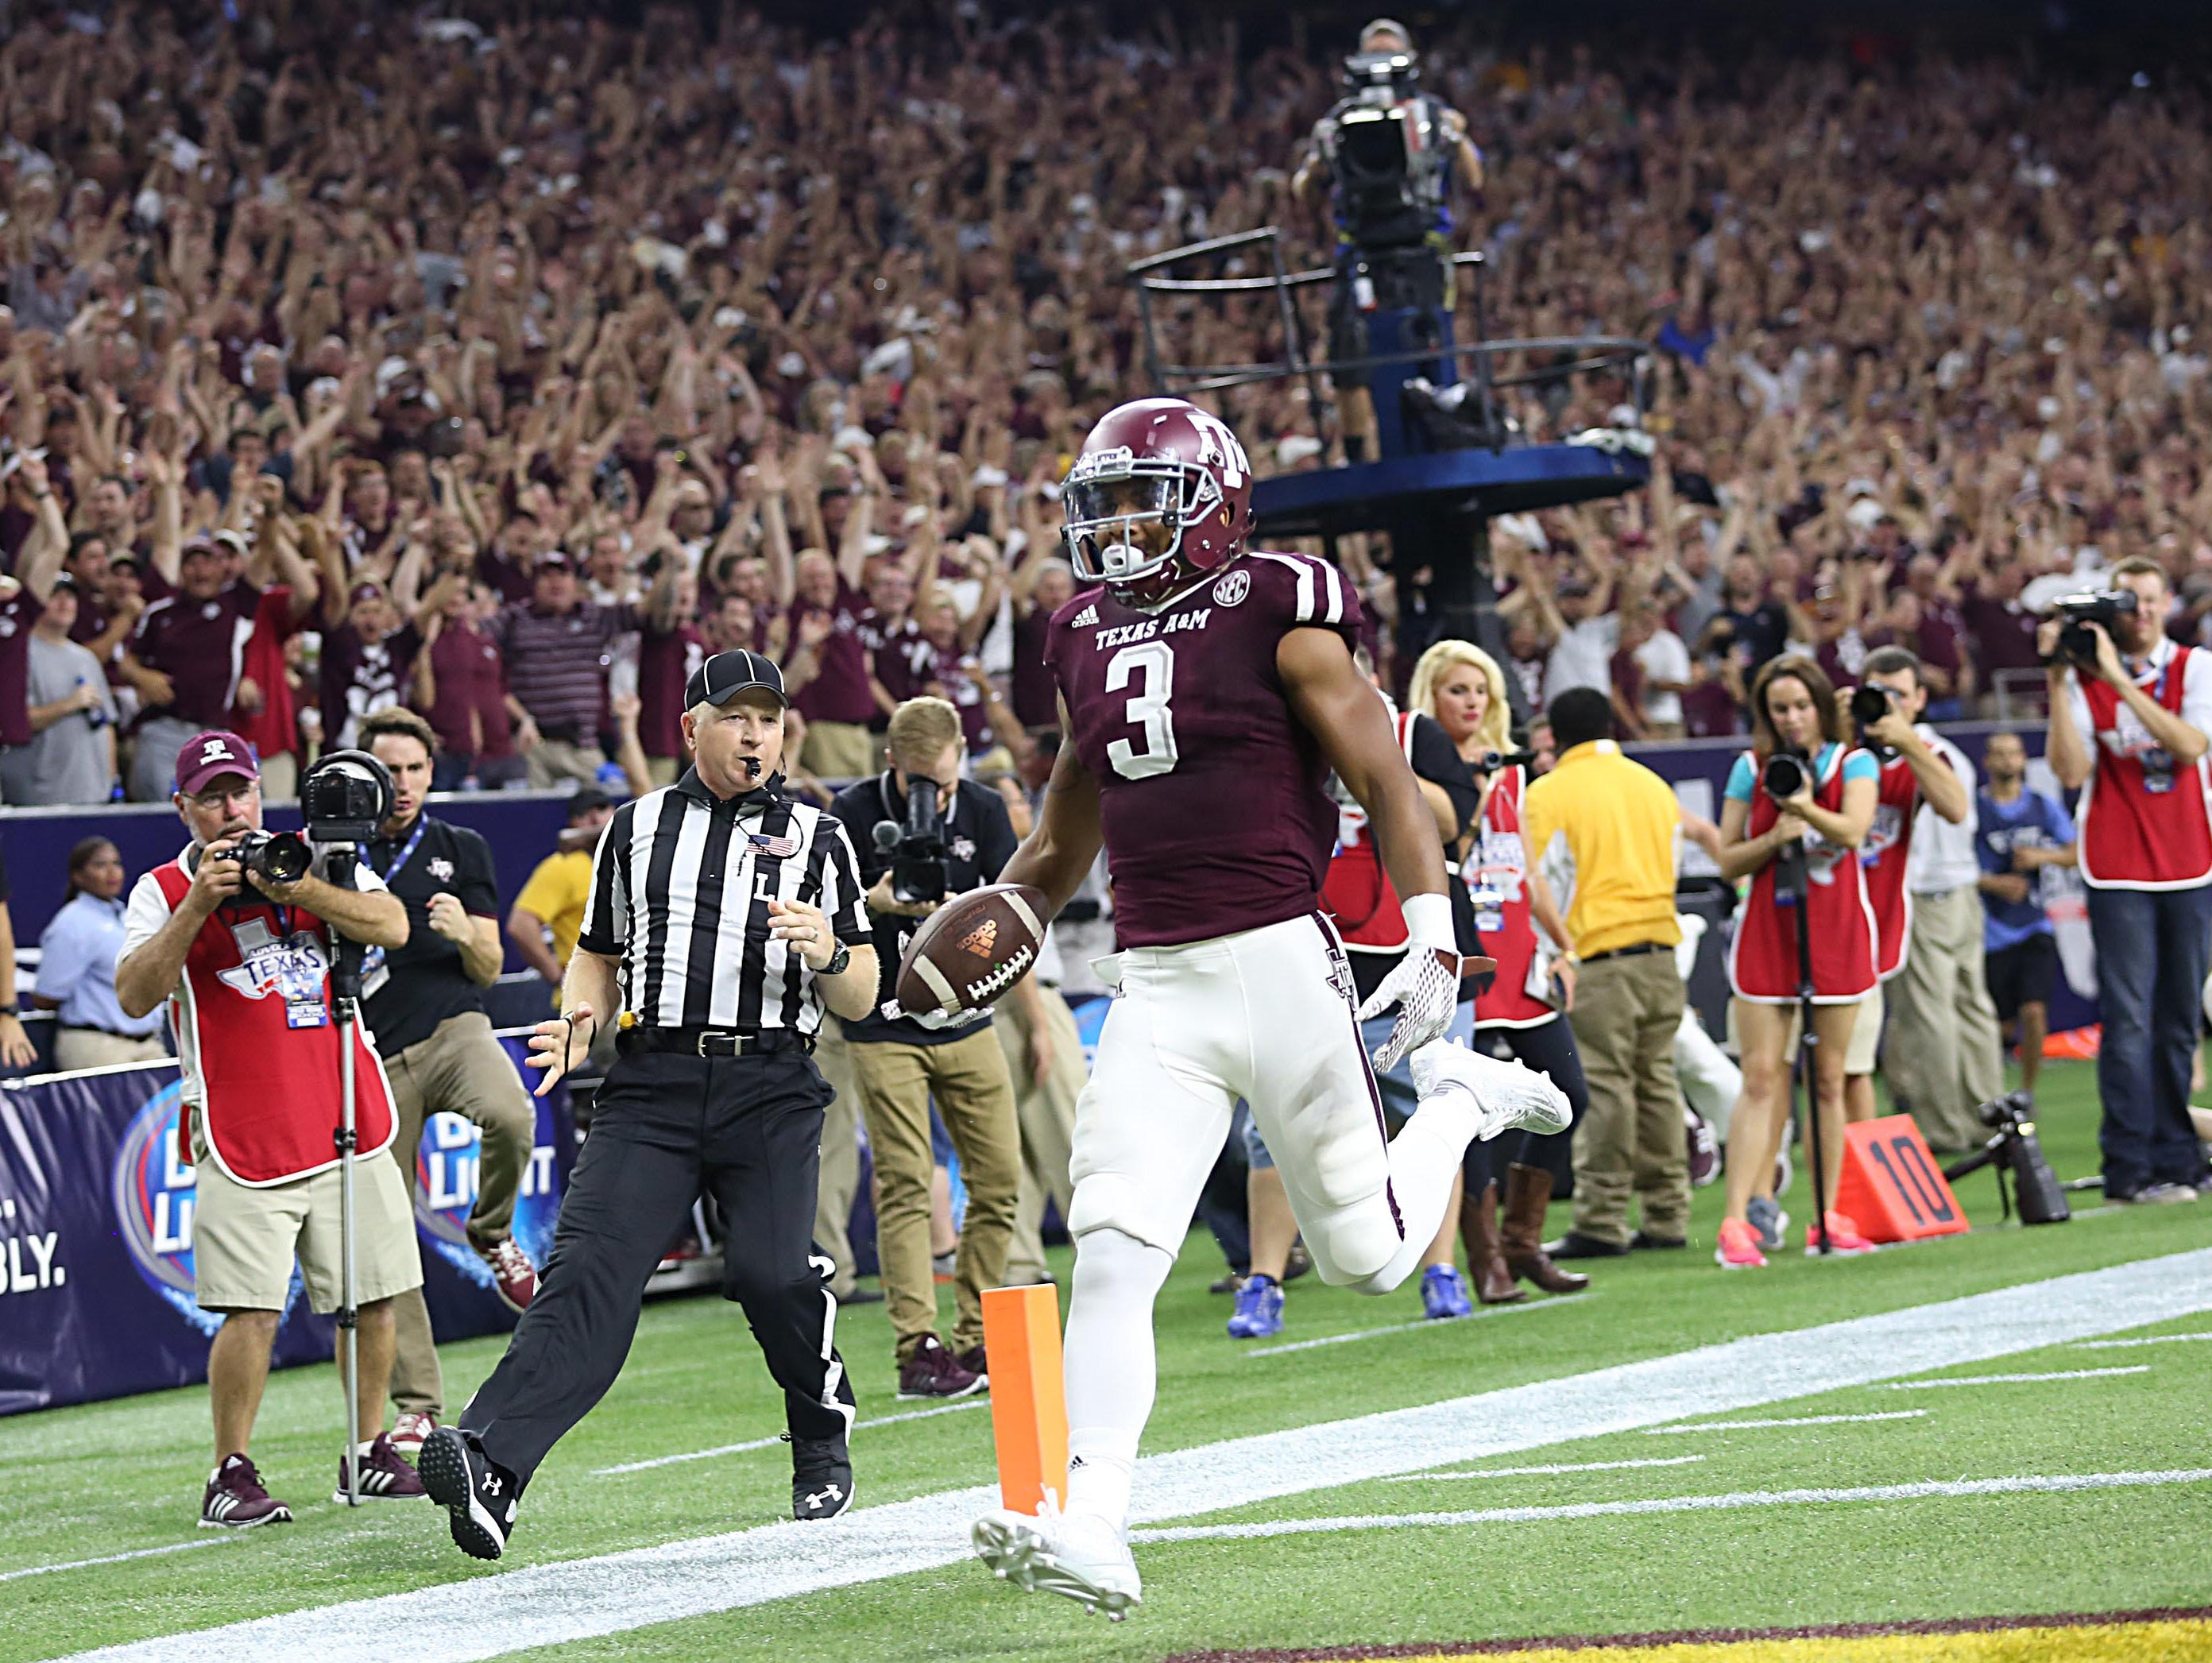 Texas A&M Aggies wide receiver Christian Kirk (3) returns a punt return for a 79 yard touchdown against the Arizona State Sun Devils in the second quarter at NRG Stadium. Kirk attended Scottsdale Saguaro High.